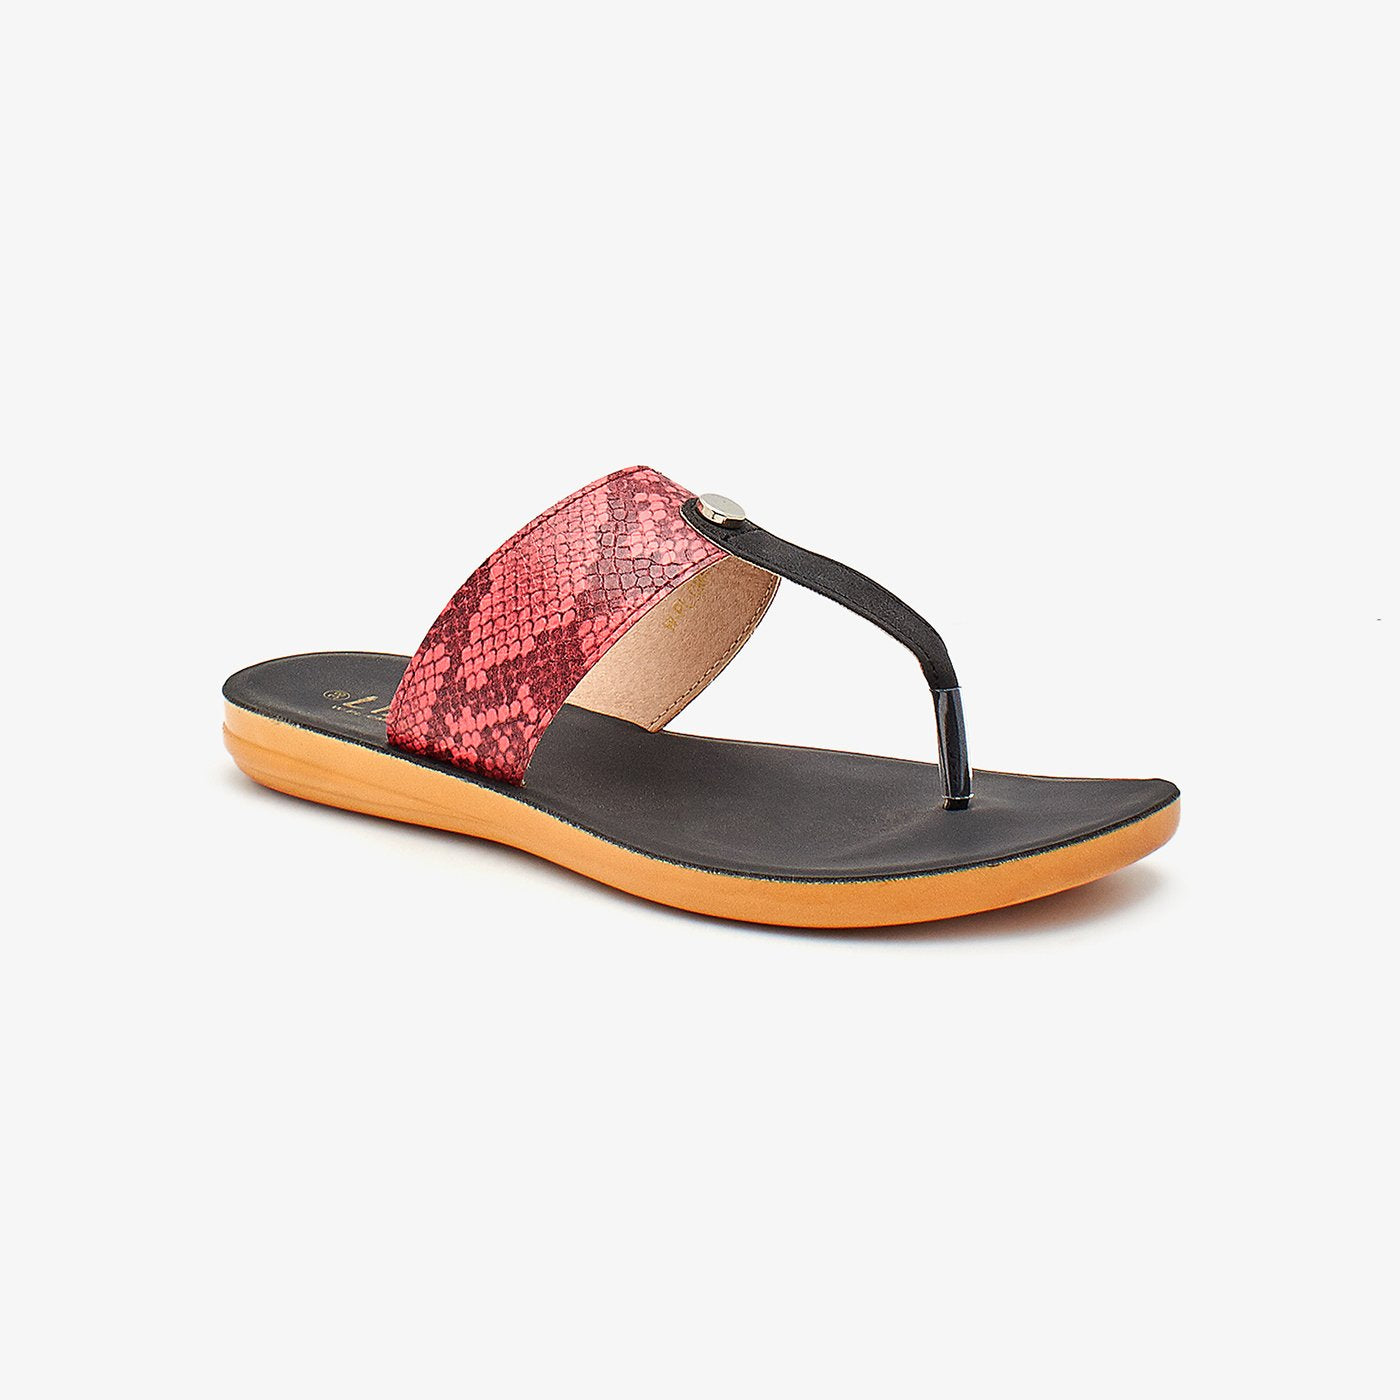 Stylish Thongs for Women